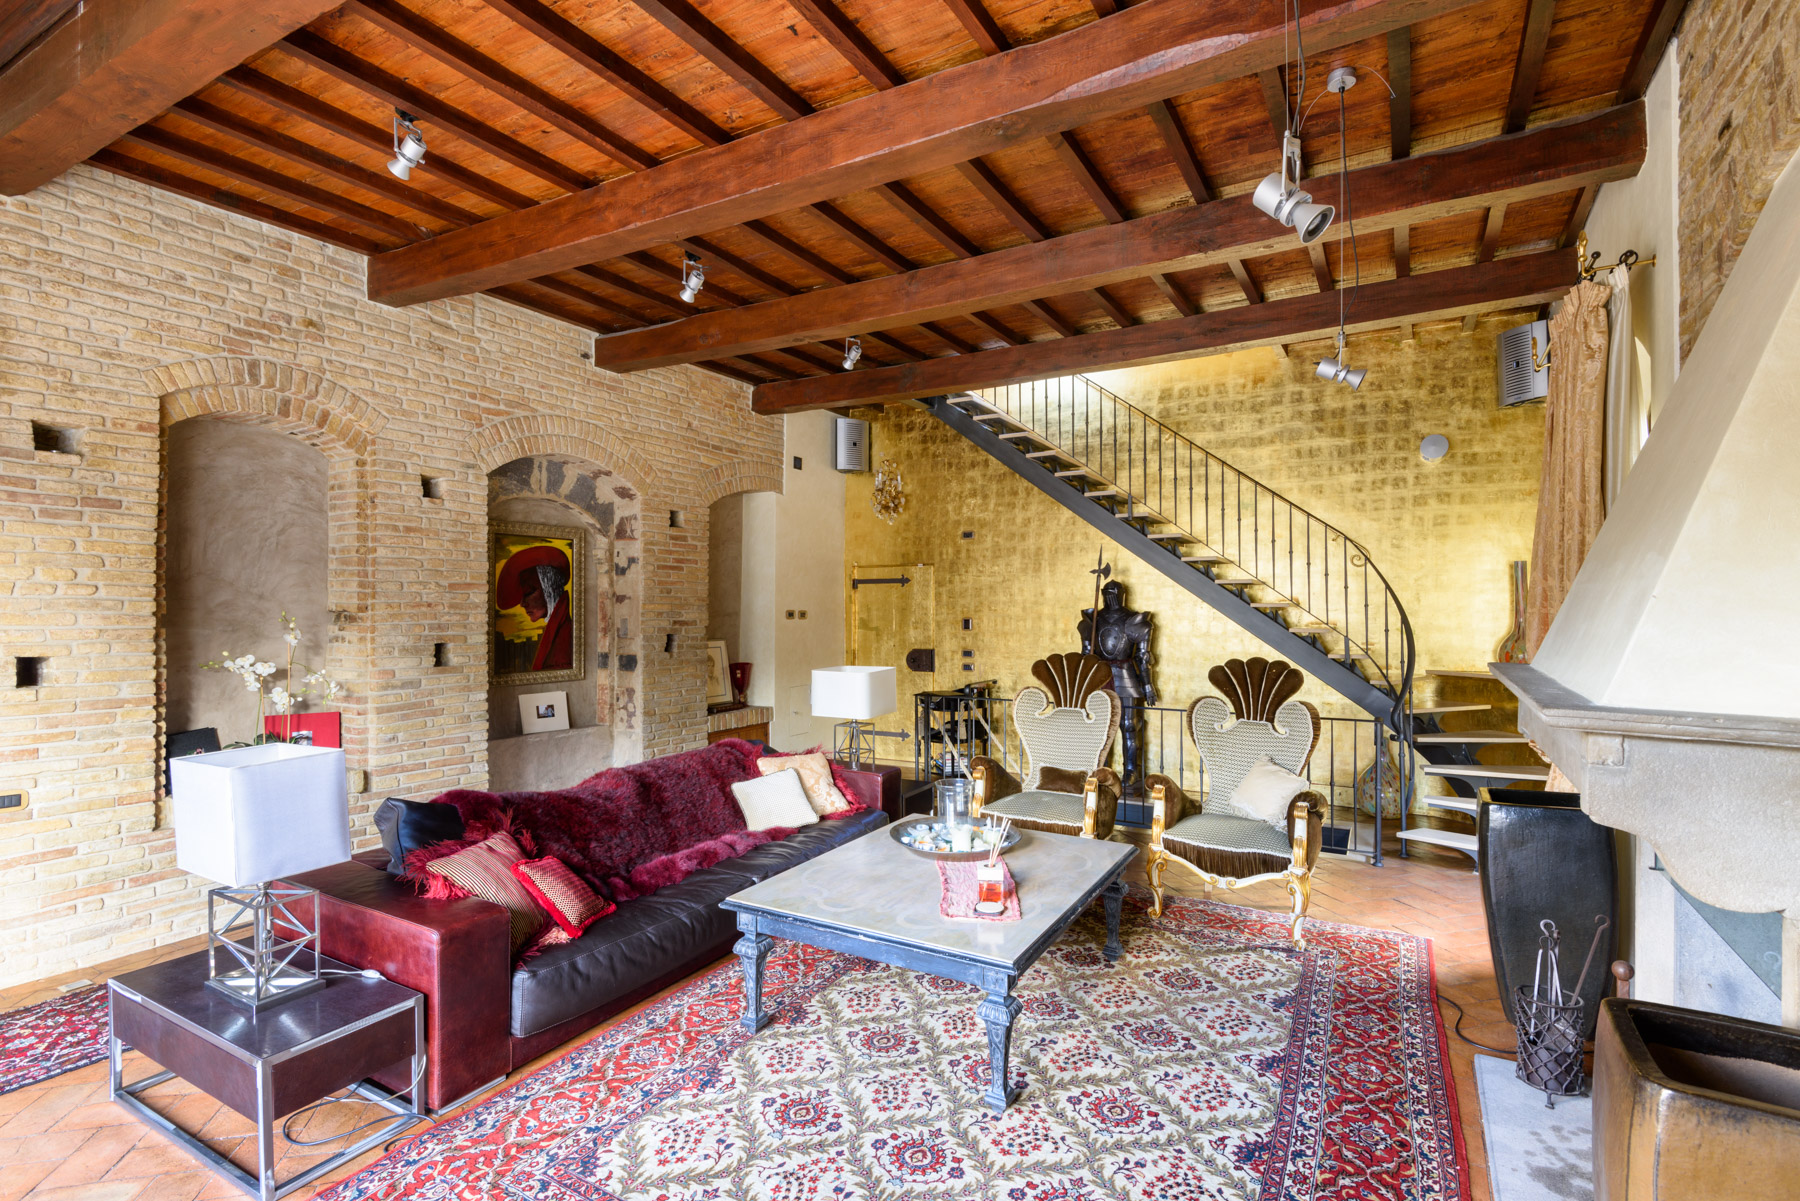 Additional photo for property listing at Medieval Tower in the center of San Gimignano Vicolo delle Vergini San Gimignano, Siena 53037 Italy